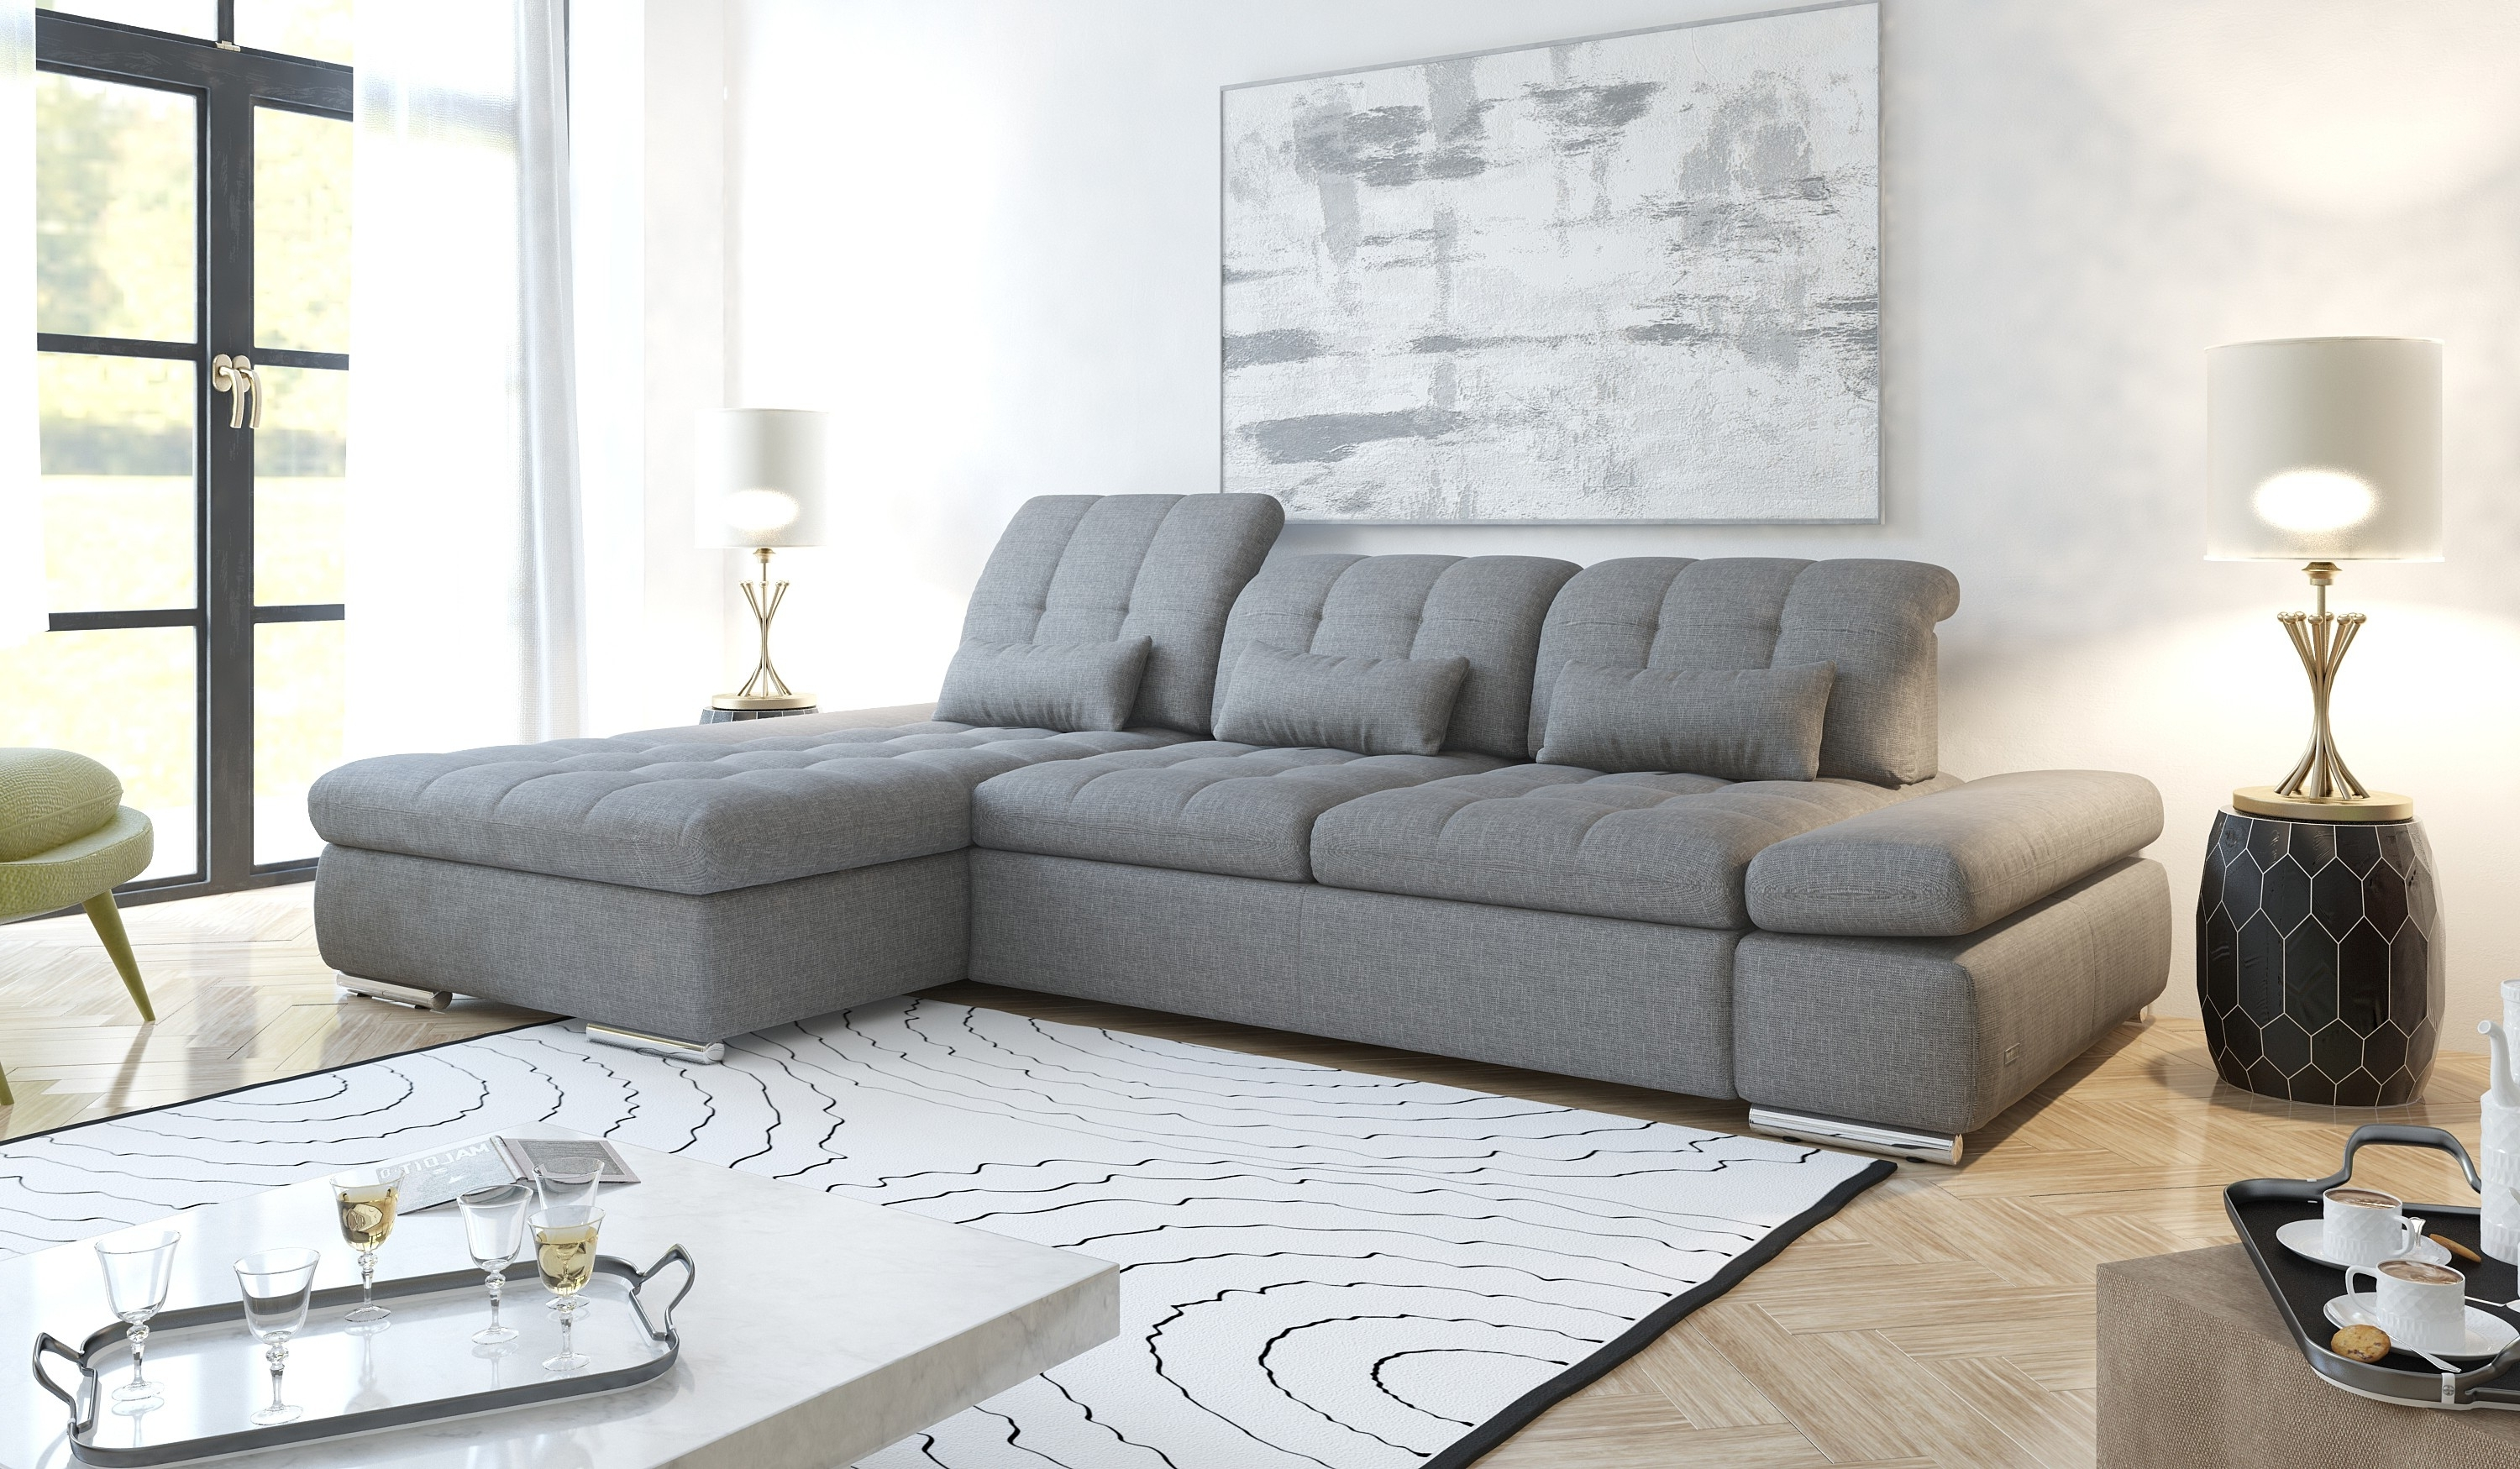 Widely Used Trinidad And Tobago Sectional Sofas In Alpine Sectional Sofa (View 15 of 15)